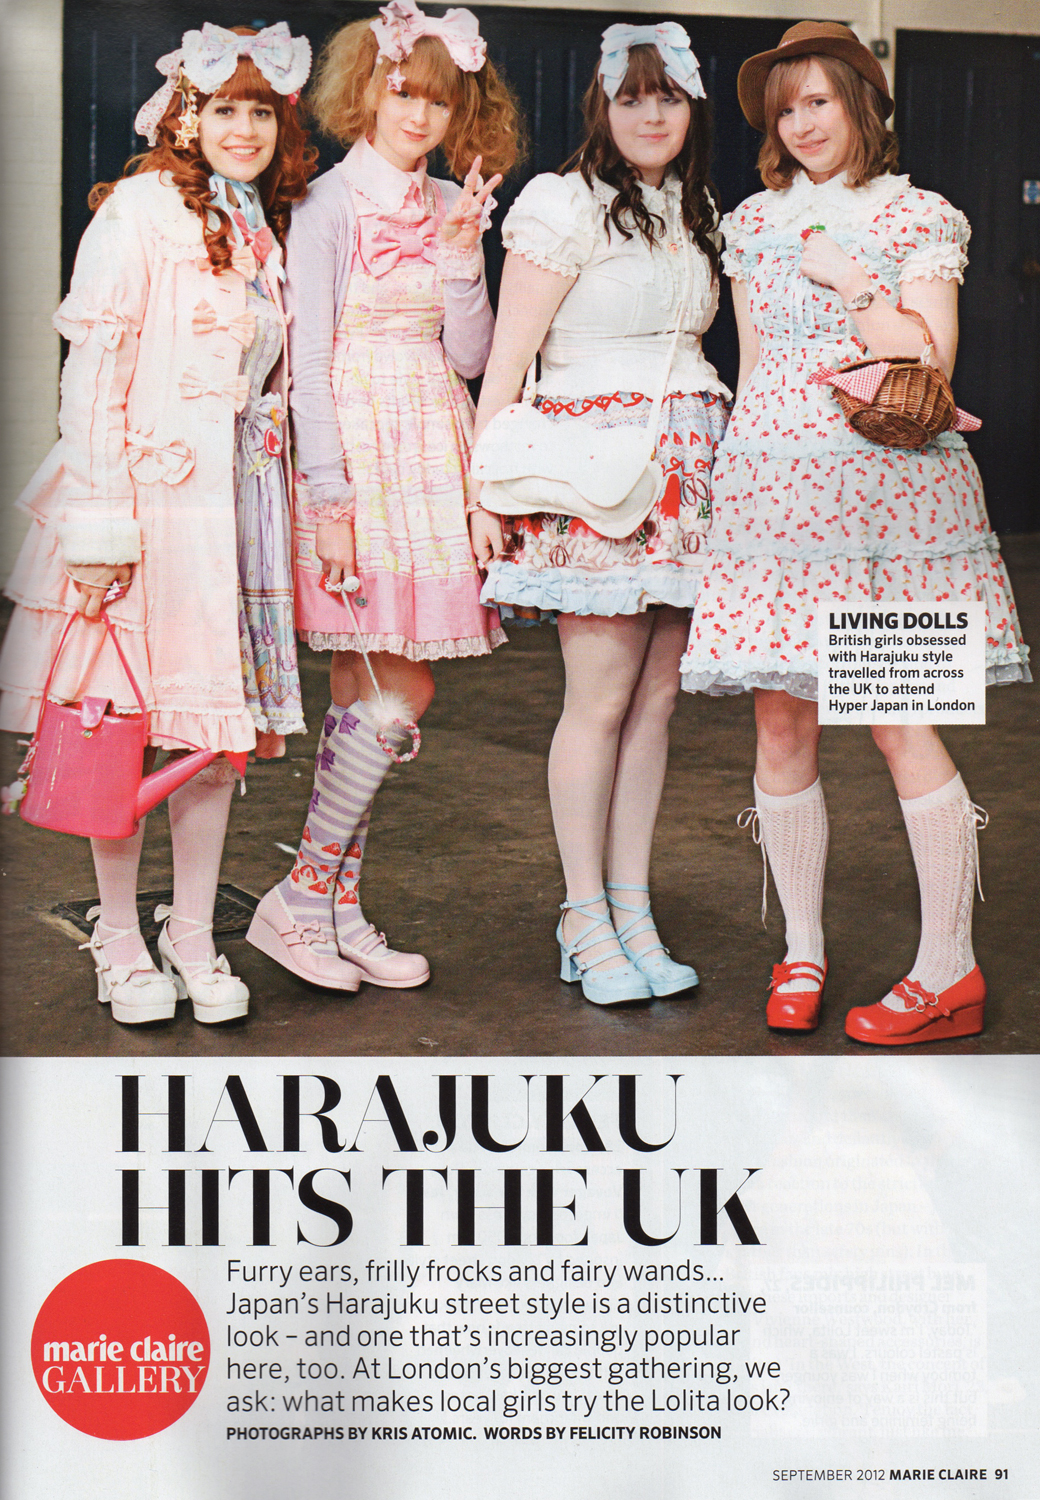 Marie Claire sept '12 HJ report